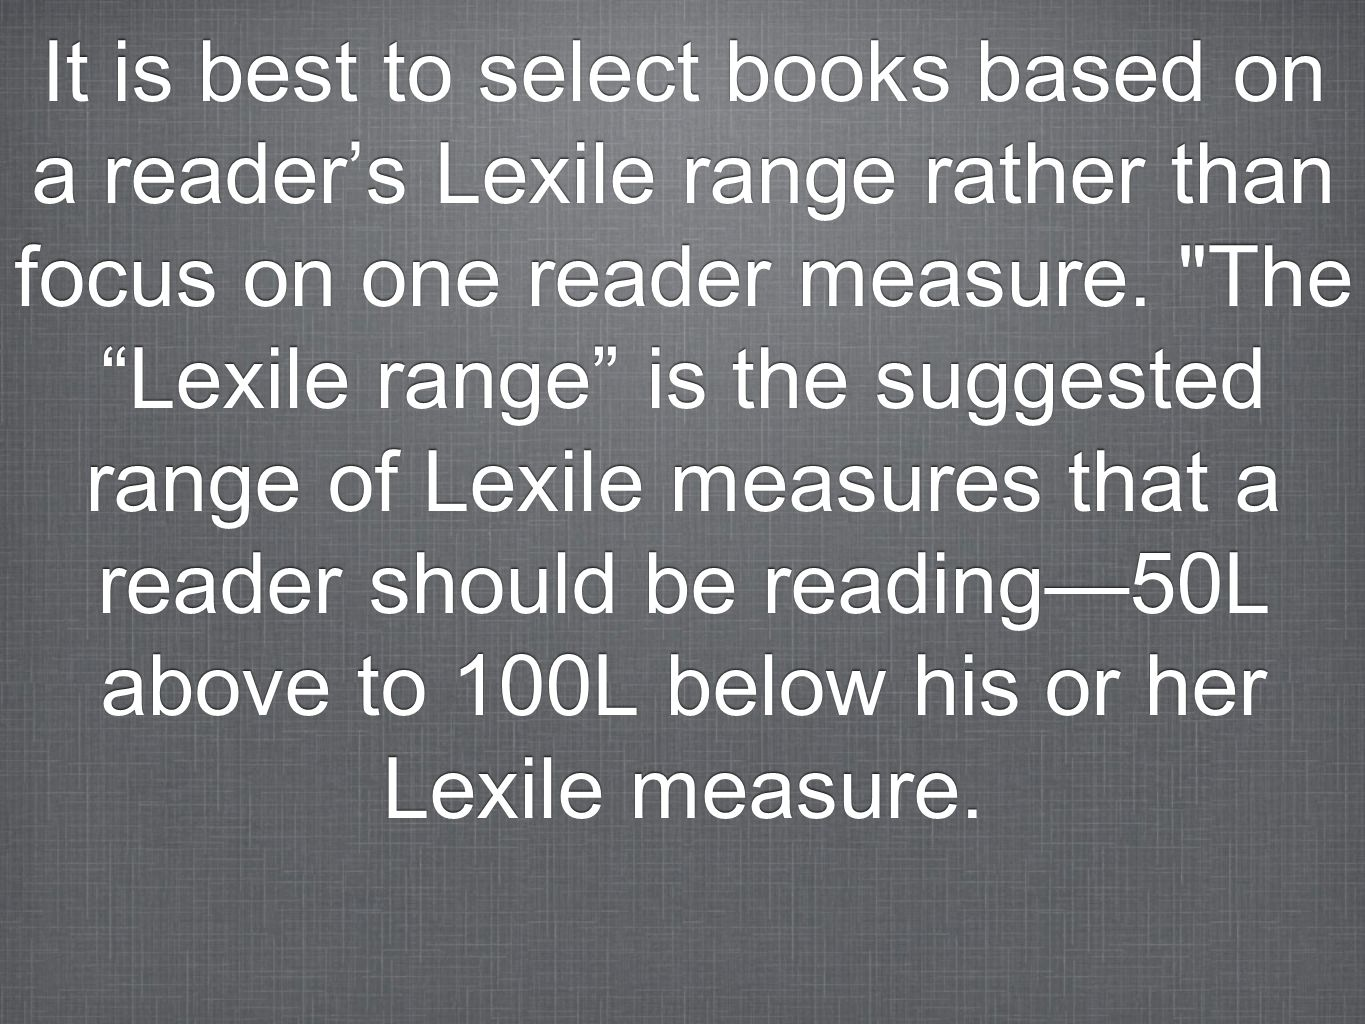 It is best to select books based on a reader's Lexile range rather than focus on one reader measure.